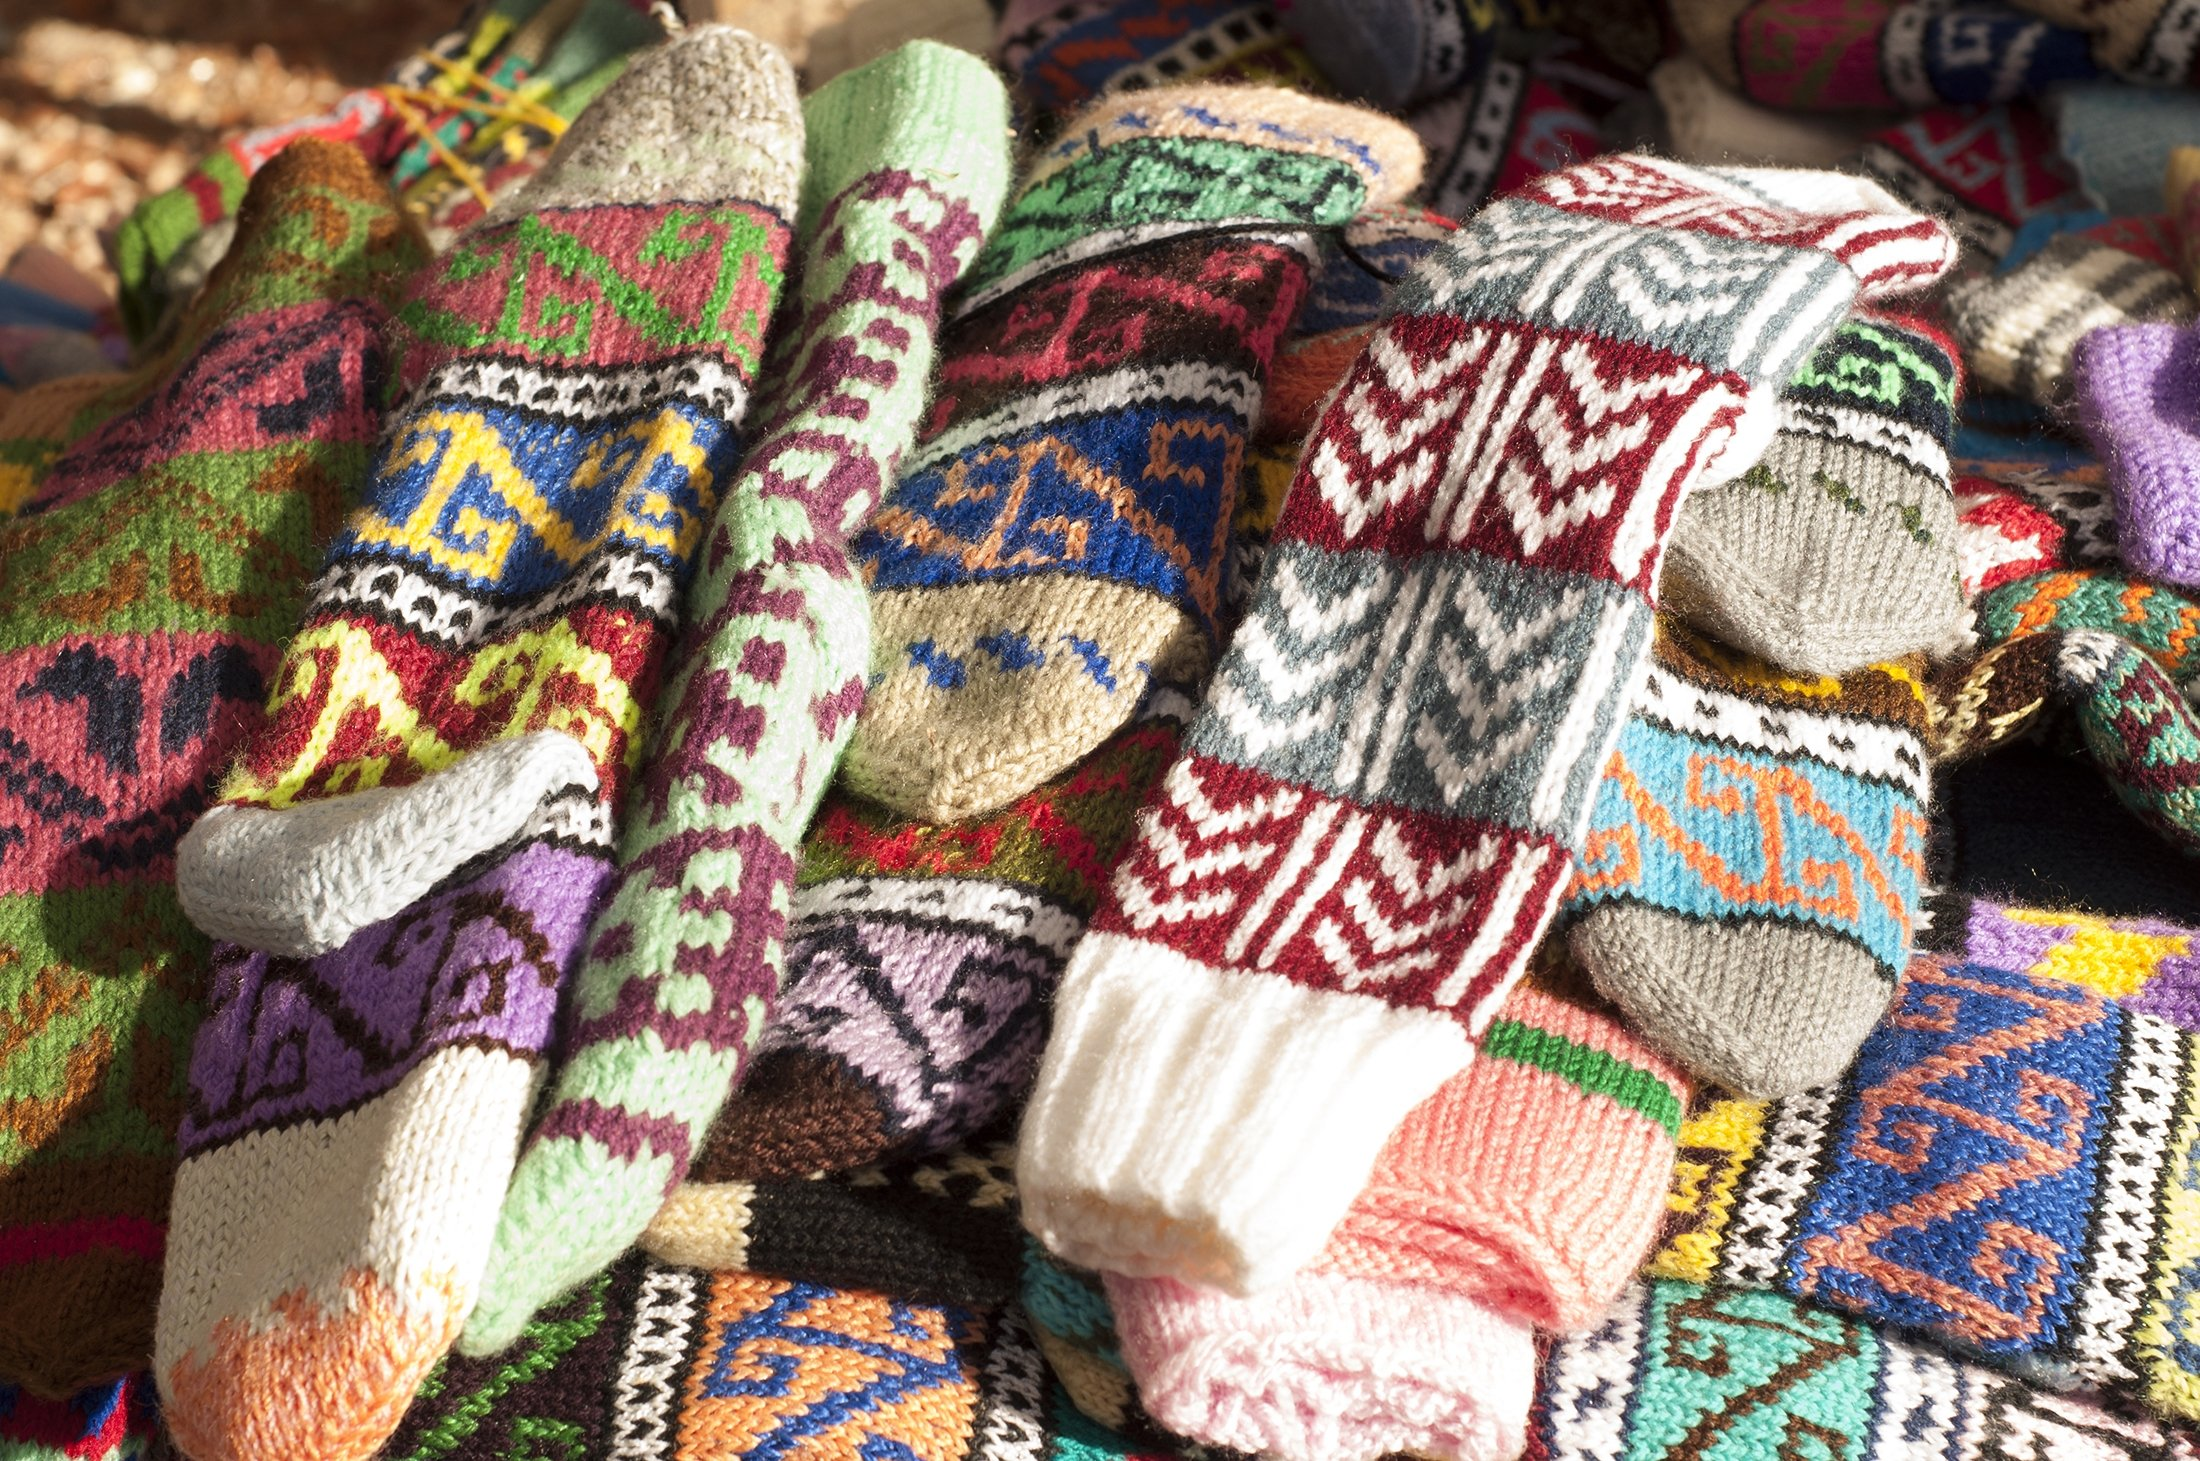 Handmade colorful knitted socks are seen on a market stall in Fethiye. (Shutterstock Photo)